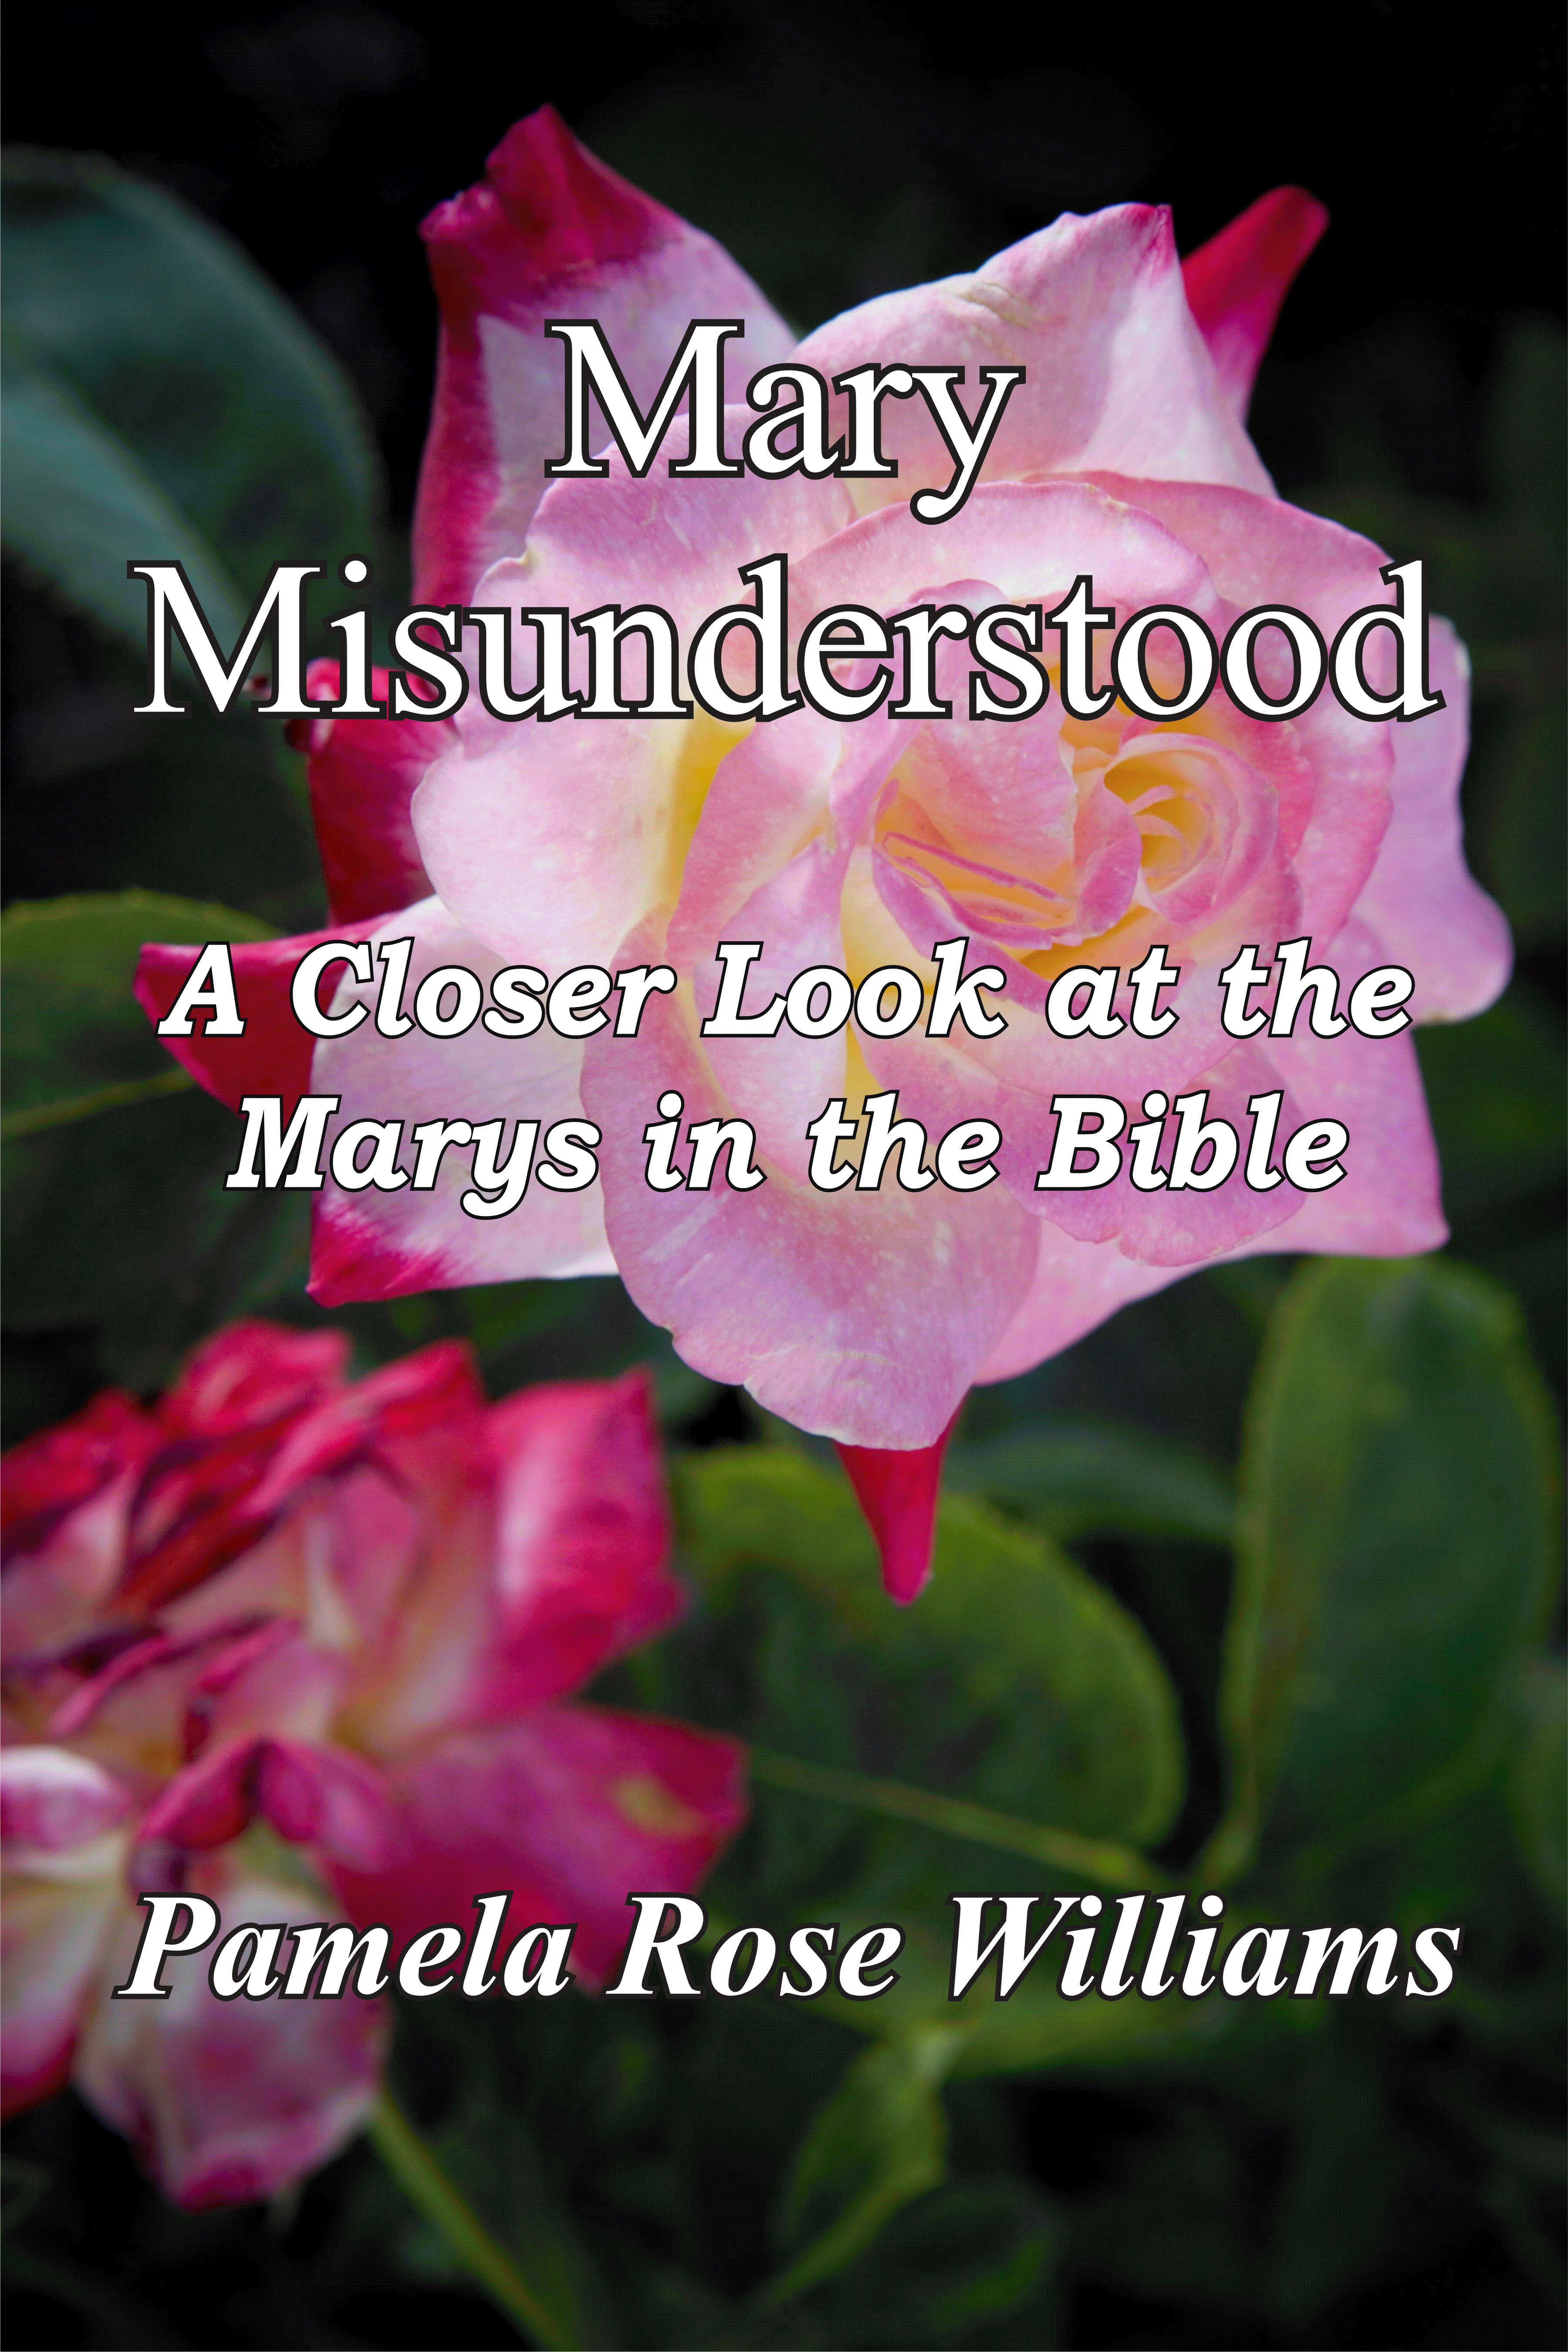 Mary Misunderstood: A Closer Look at the Marys in the Bible by Pamela Rose Williams